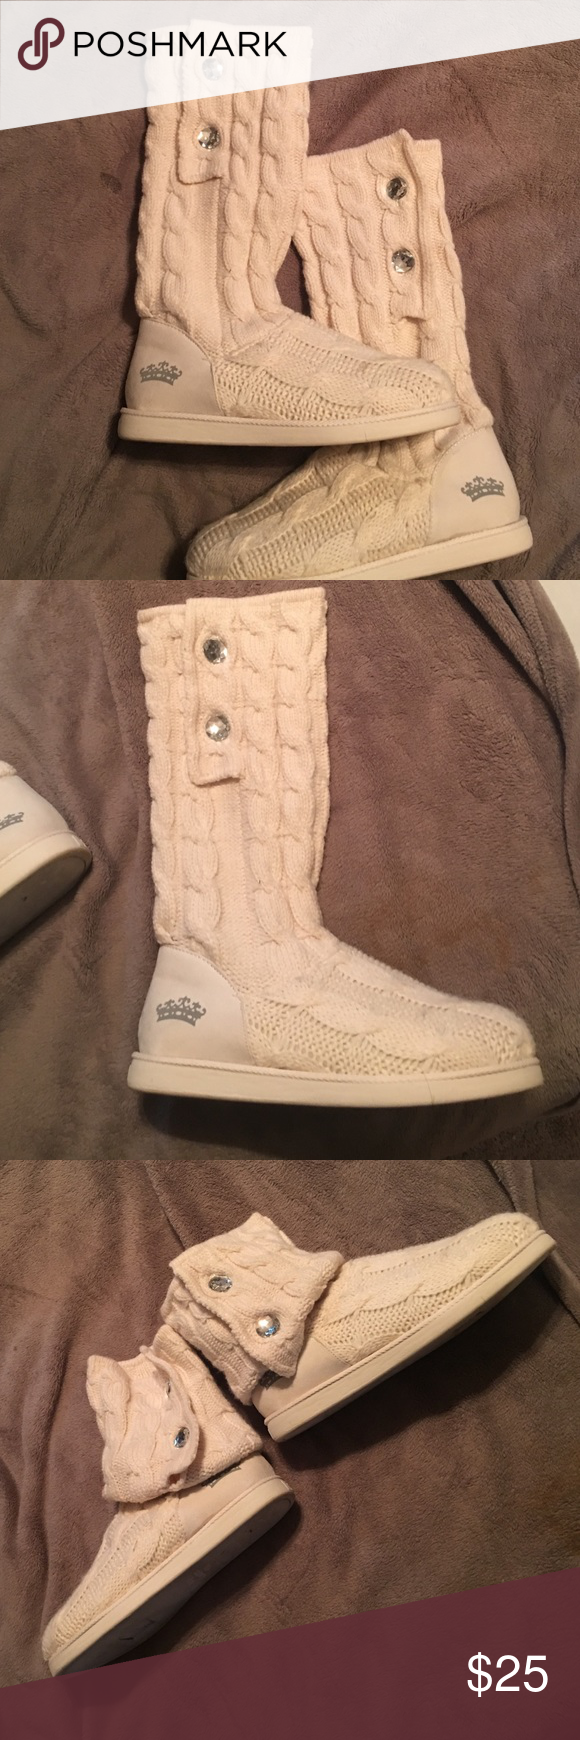 Sweater boots Very lightly worn sweater boots, can be worn sheen high or folded down to ankle boots. Juicy Couture Shoes Ankle Boots & Booties